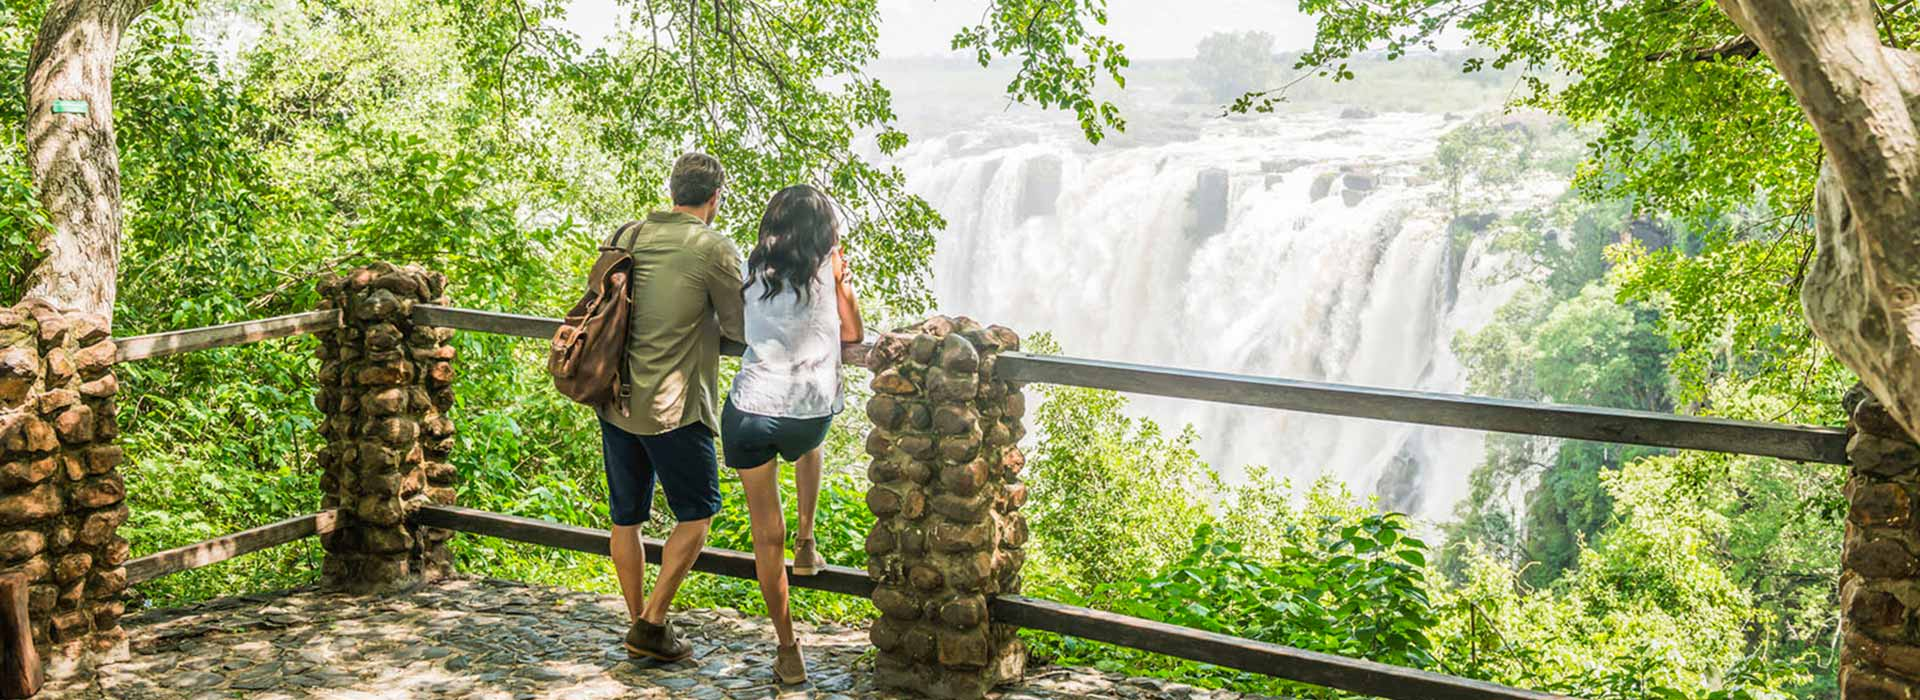 Visiting Victoria falls is among things to do in Zambia